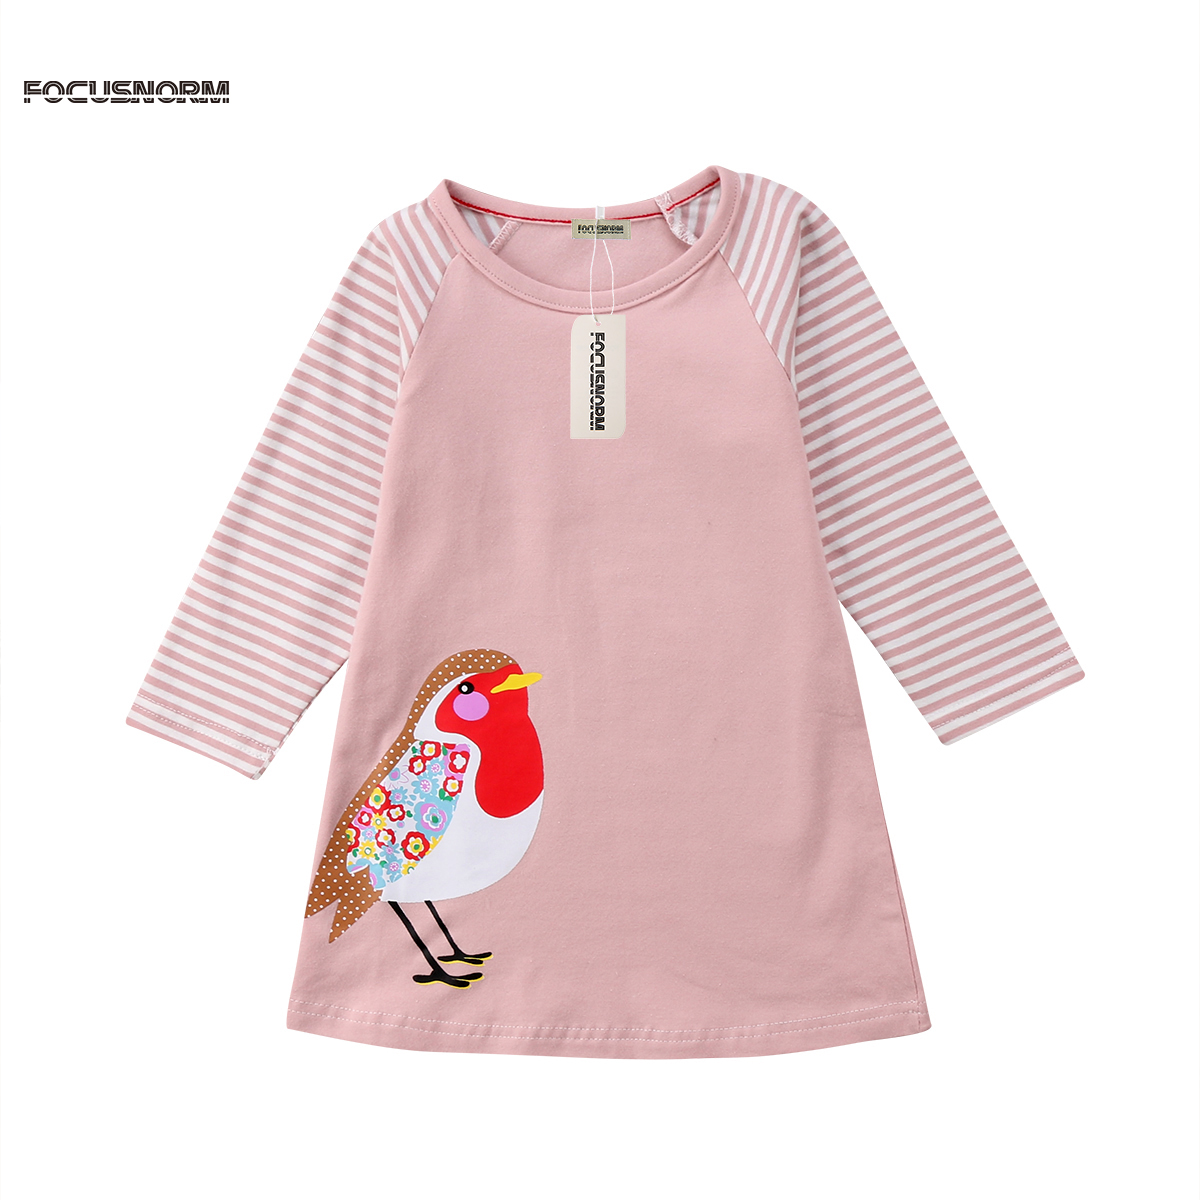 Long Sleeve Girl Dress striped Casual Cotton Spring Autumn Animal Applique Toddler Baby Girls Princess Dresses Baby Girl Clothe